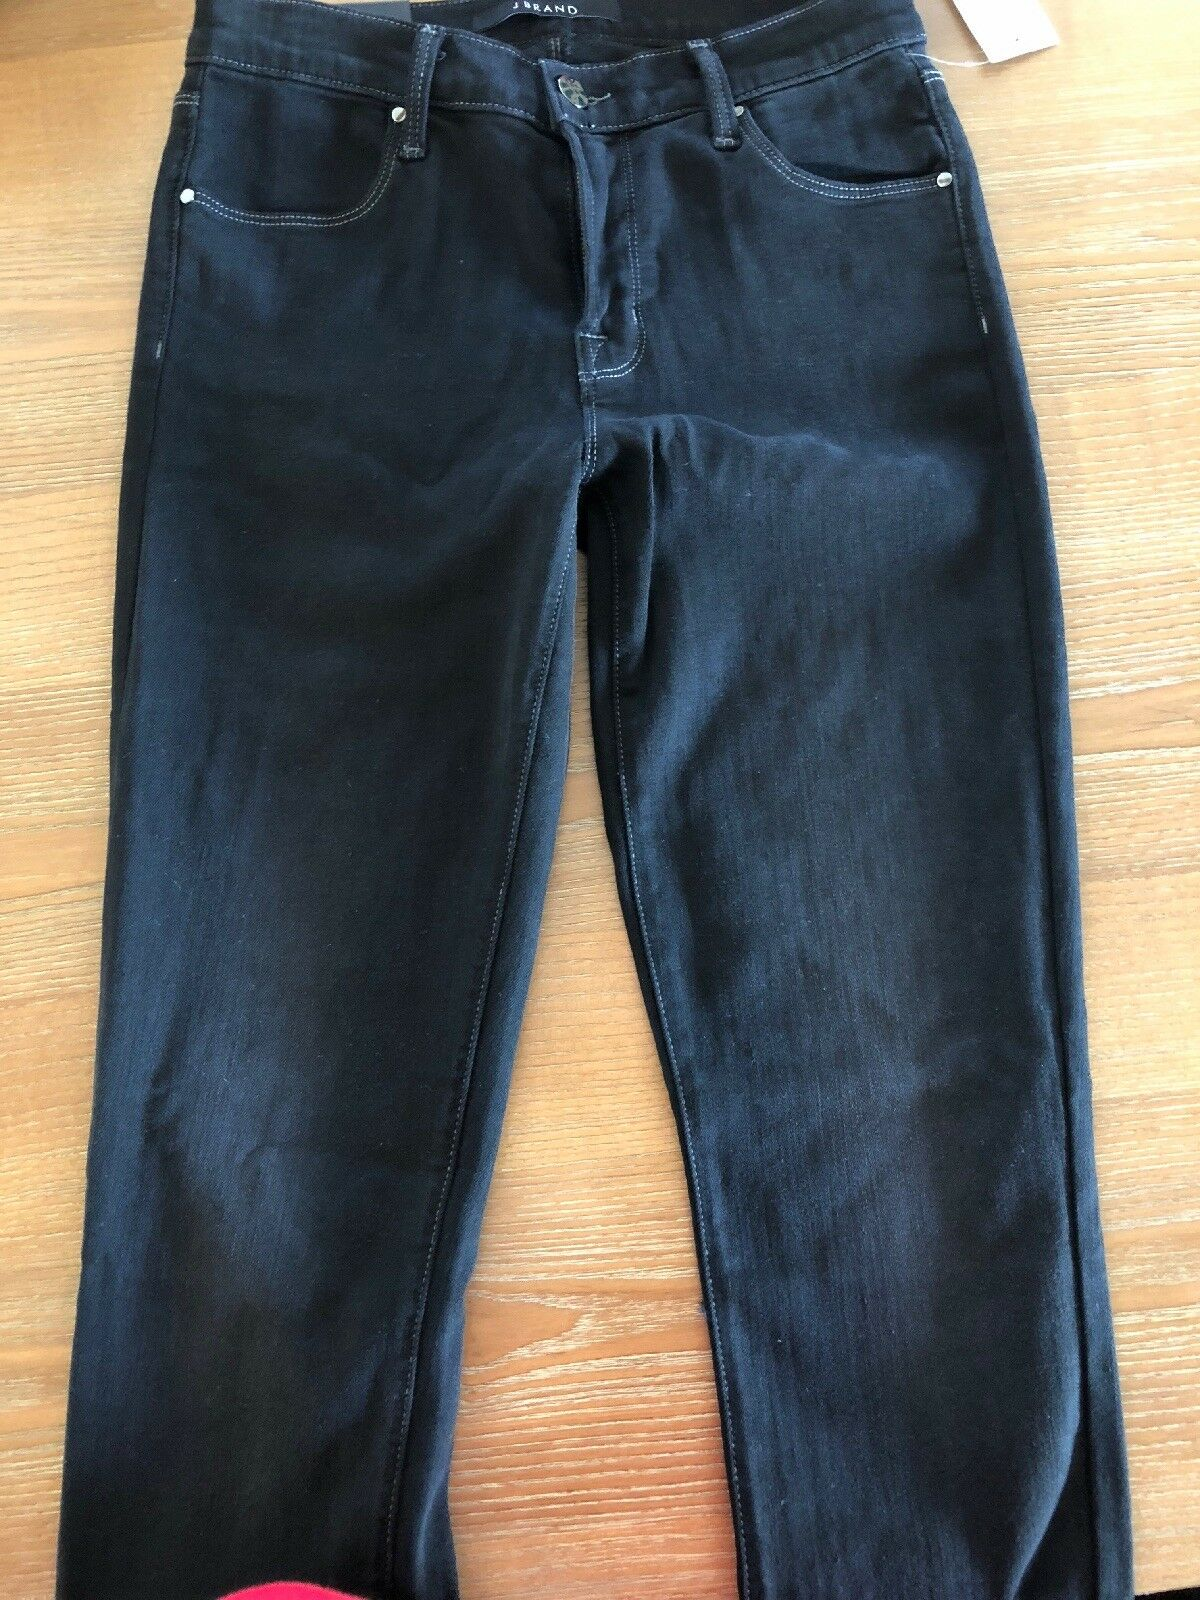 J Brand Jeans Women's Mid Rise Super Skinny  Size 27